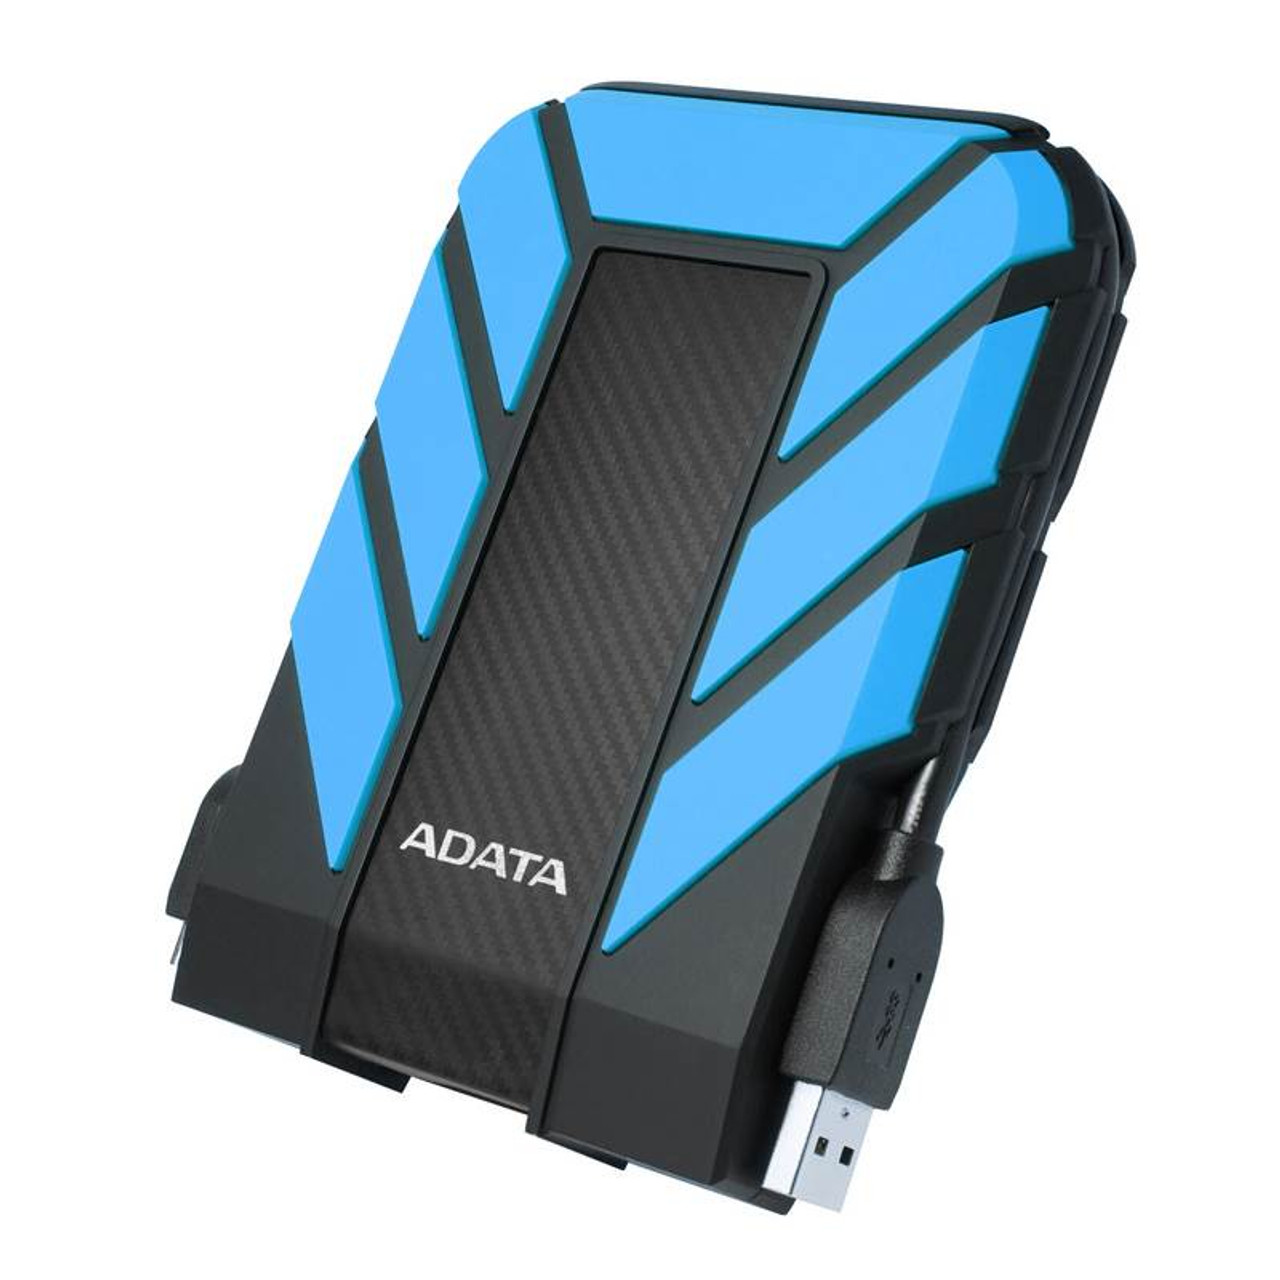 Image for Adata Rugged Pro HD710 1TB USB 3.0 Portable External Hard Drive - Blue CX Computer Superstore